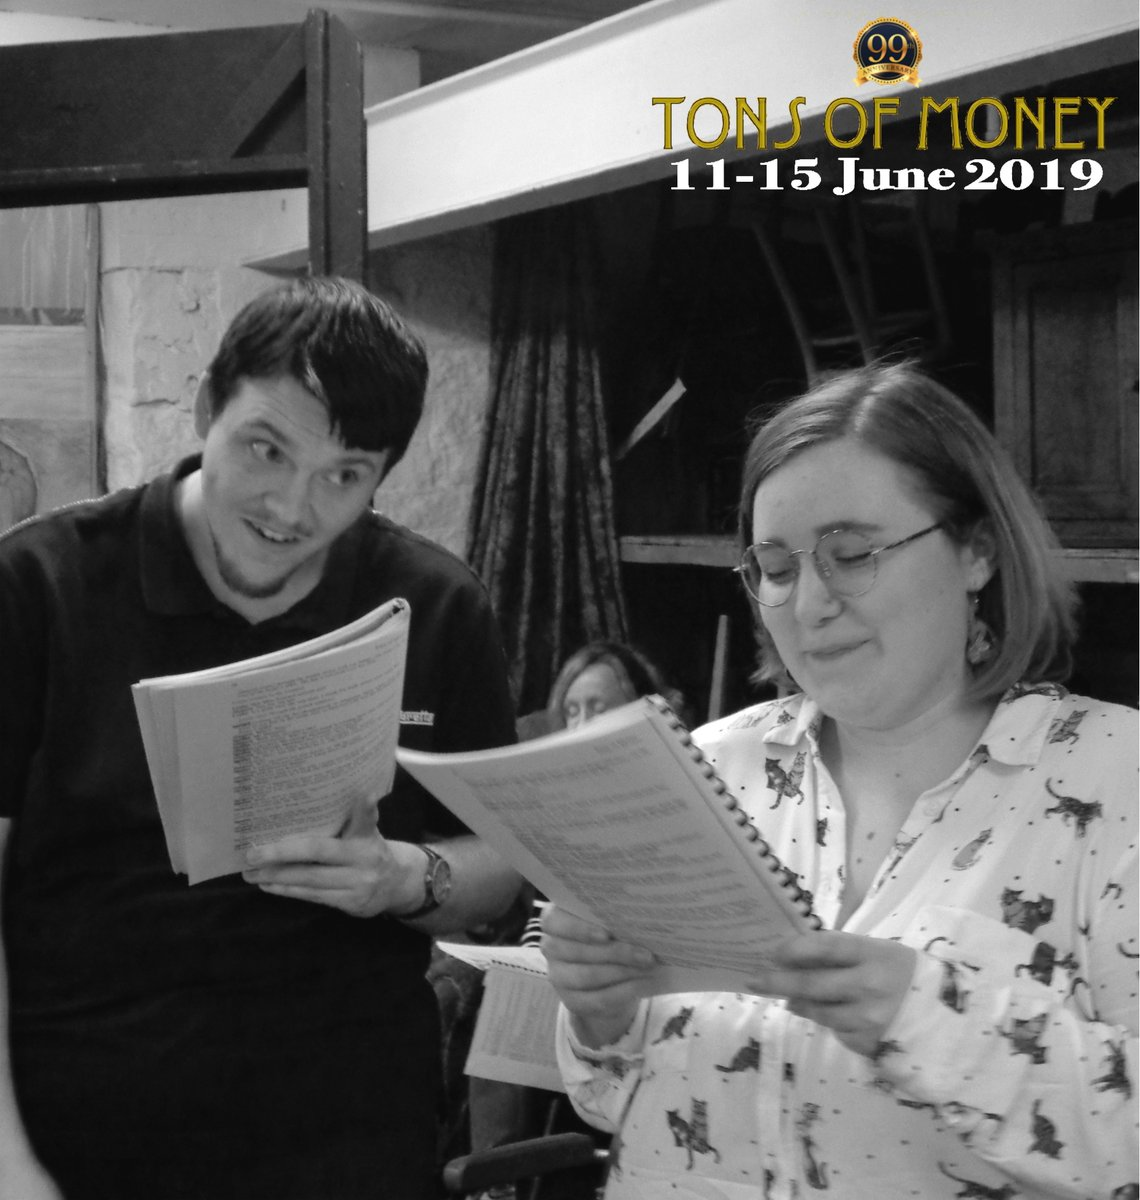 Aubrey and Louise aren't the only ones scheming to get hold of tons of money in next month's inheritance-impersonation farce...  https://www.thelbt.org/shows/tons-of-money/… @theLBT, 11-15 June #Tons #Huddersfield #Ayckbourn